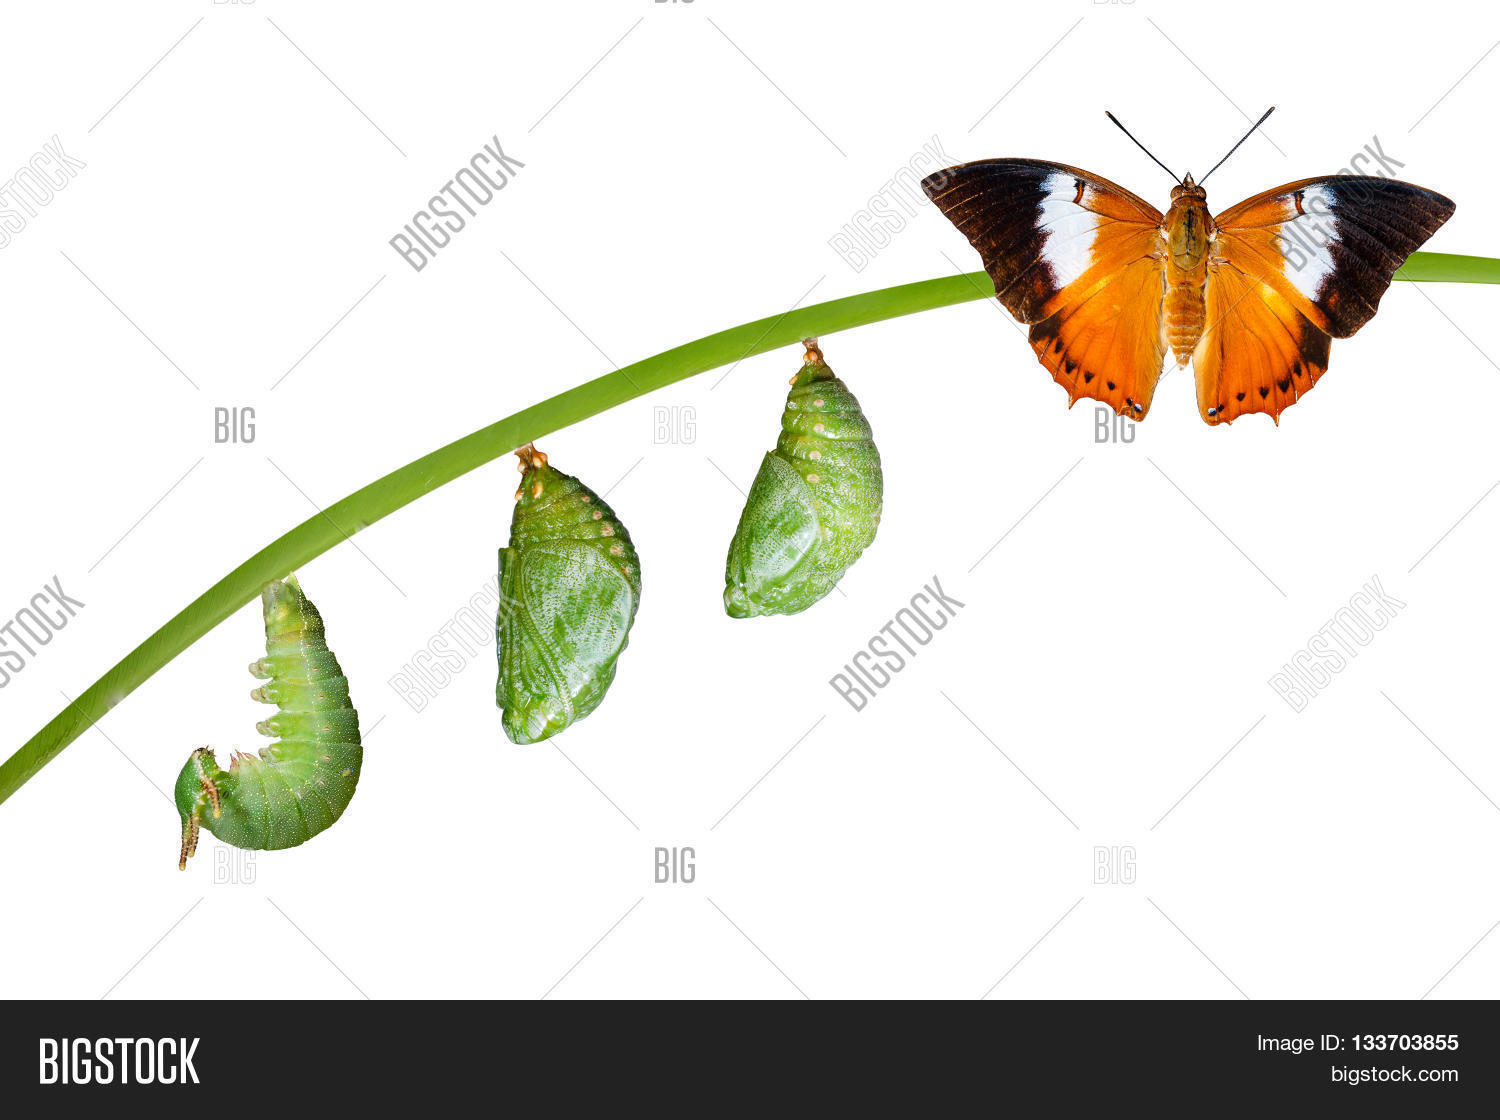 Butterfly life cycle chrysalis